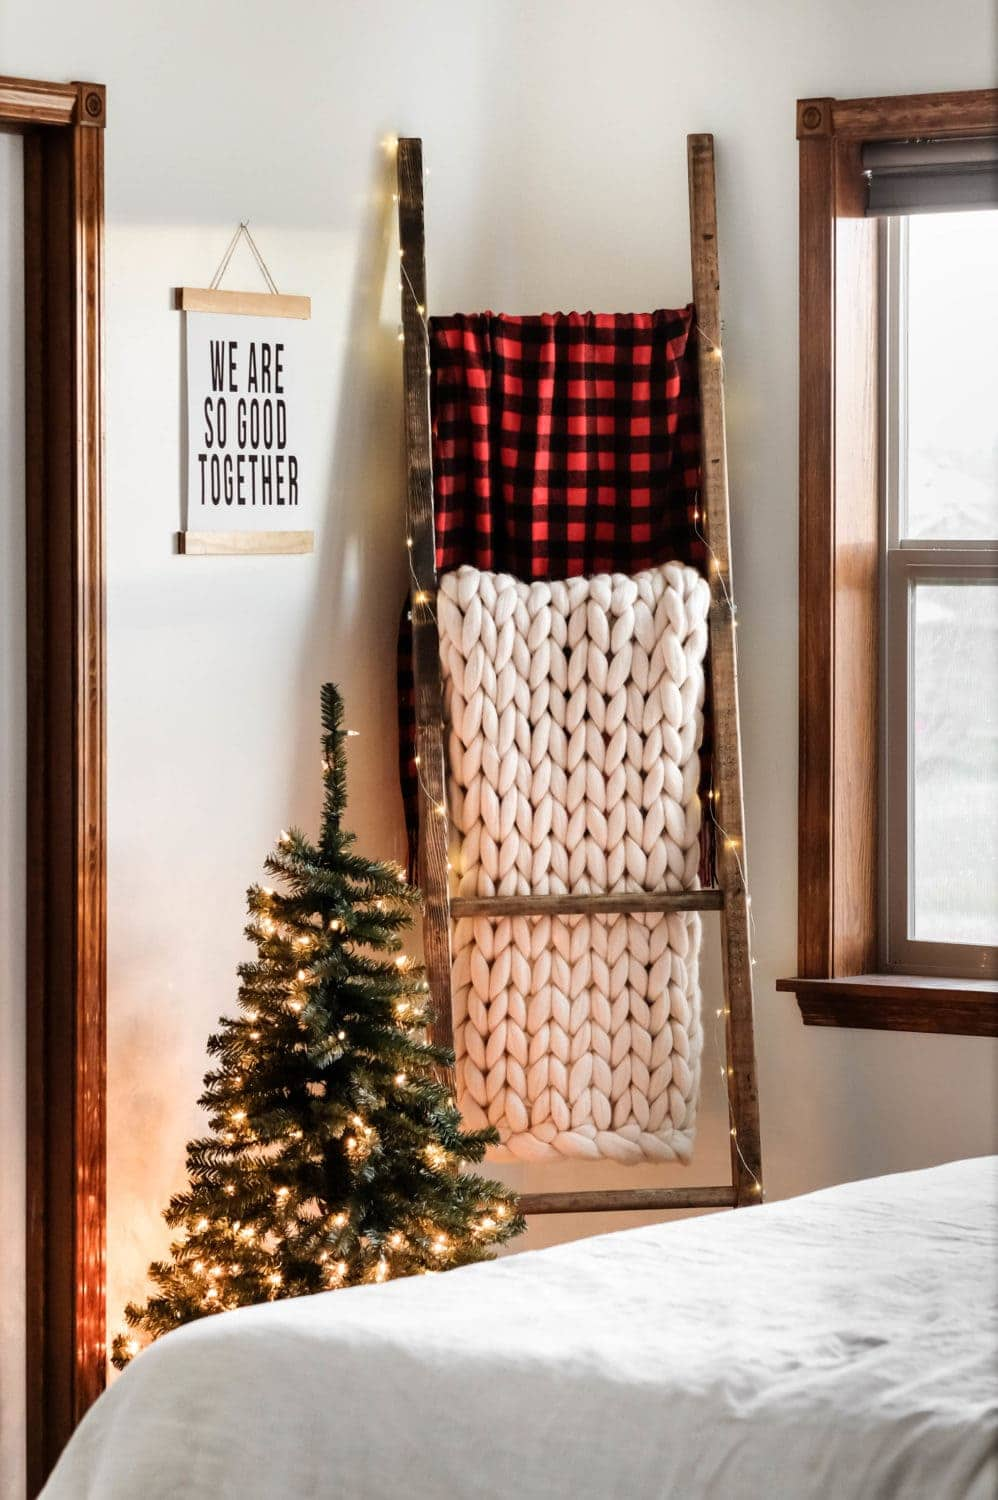 A blanket ladder holding a white woven blanket, and a red buffalo check blanket